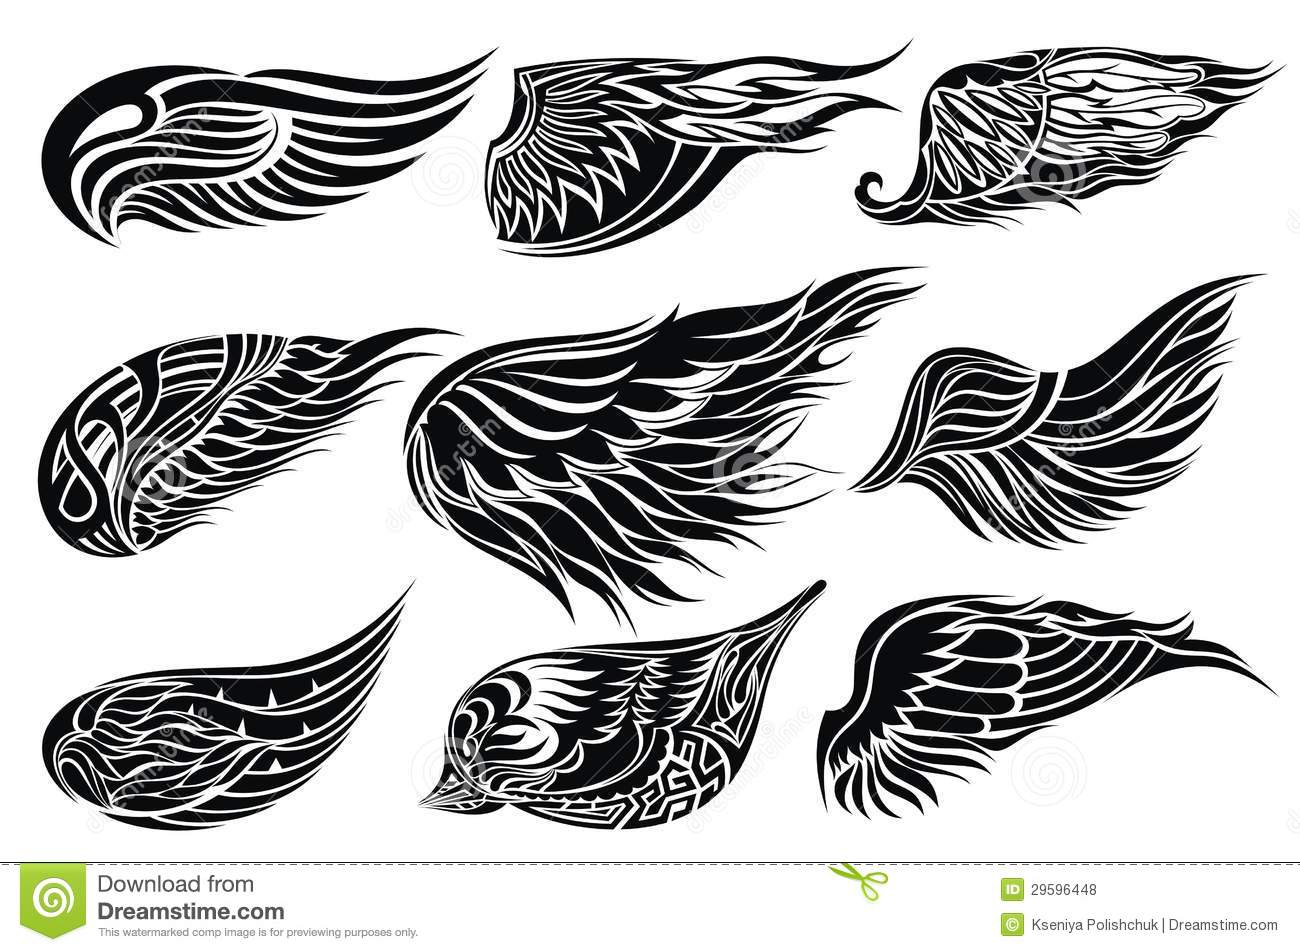 Wing tattoo design - Wings Tattoo Designs Wings Tattoo Design Royalty Free Stock Photos Download